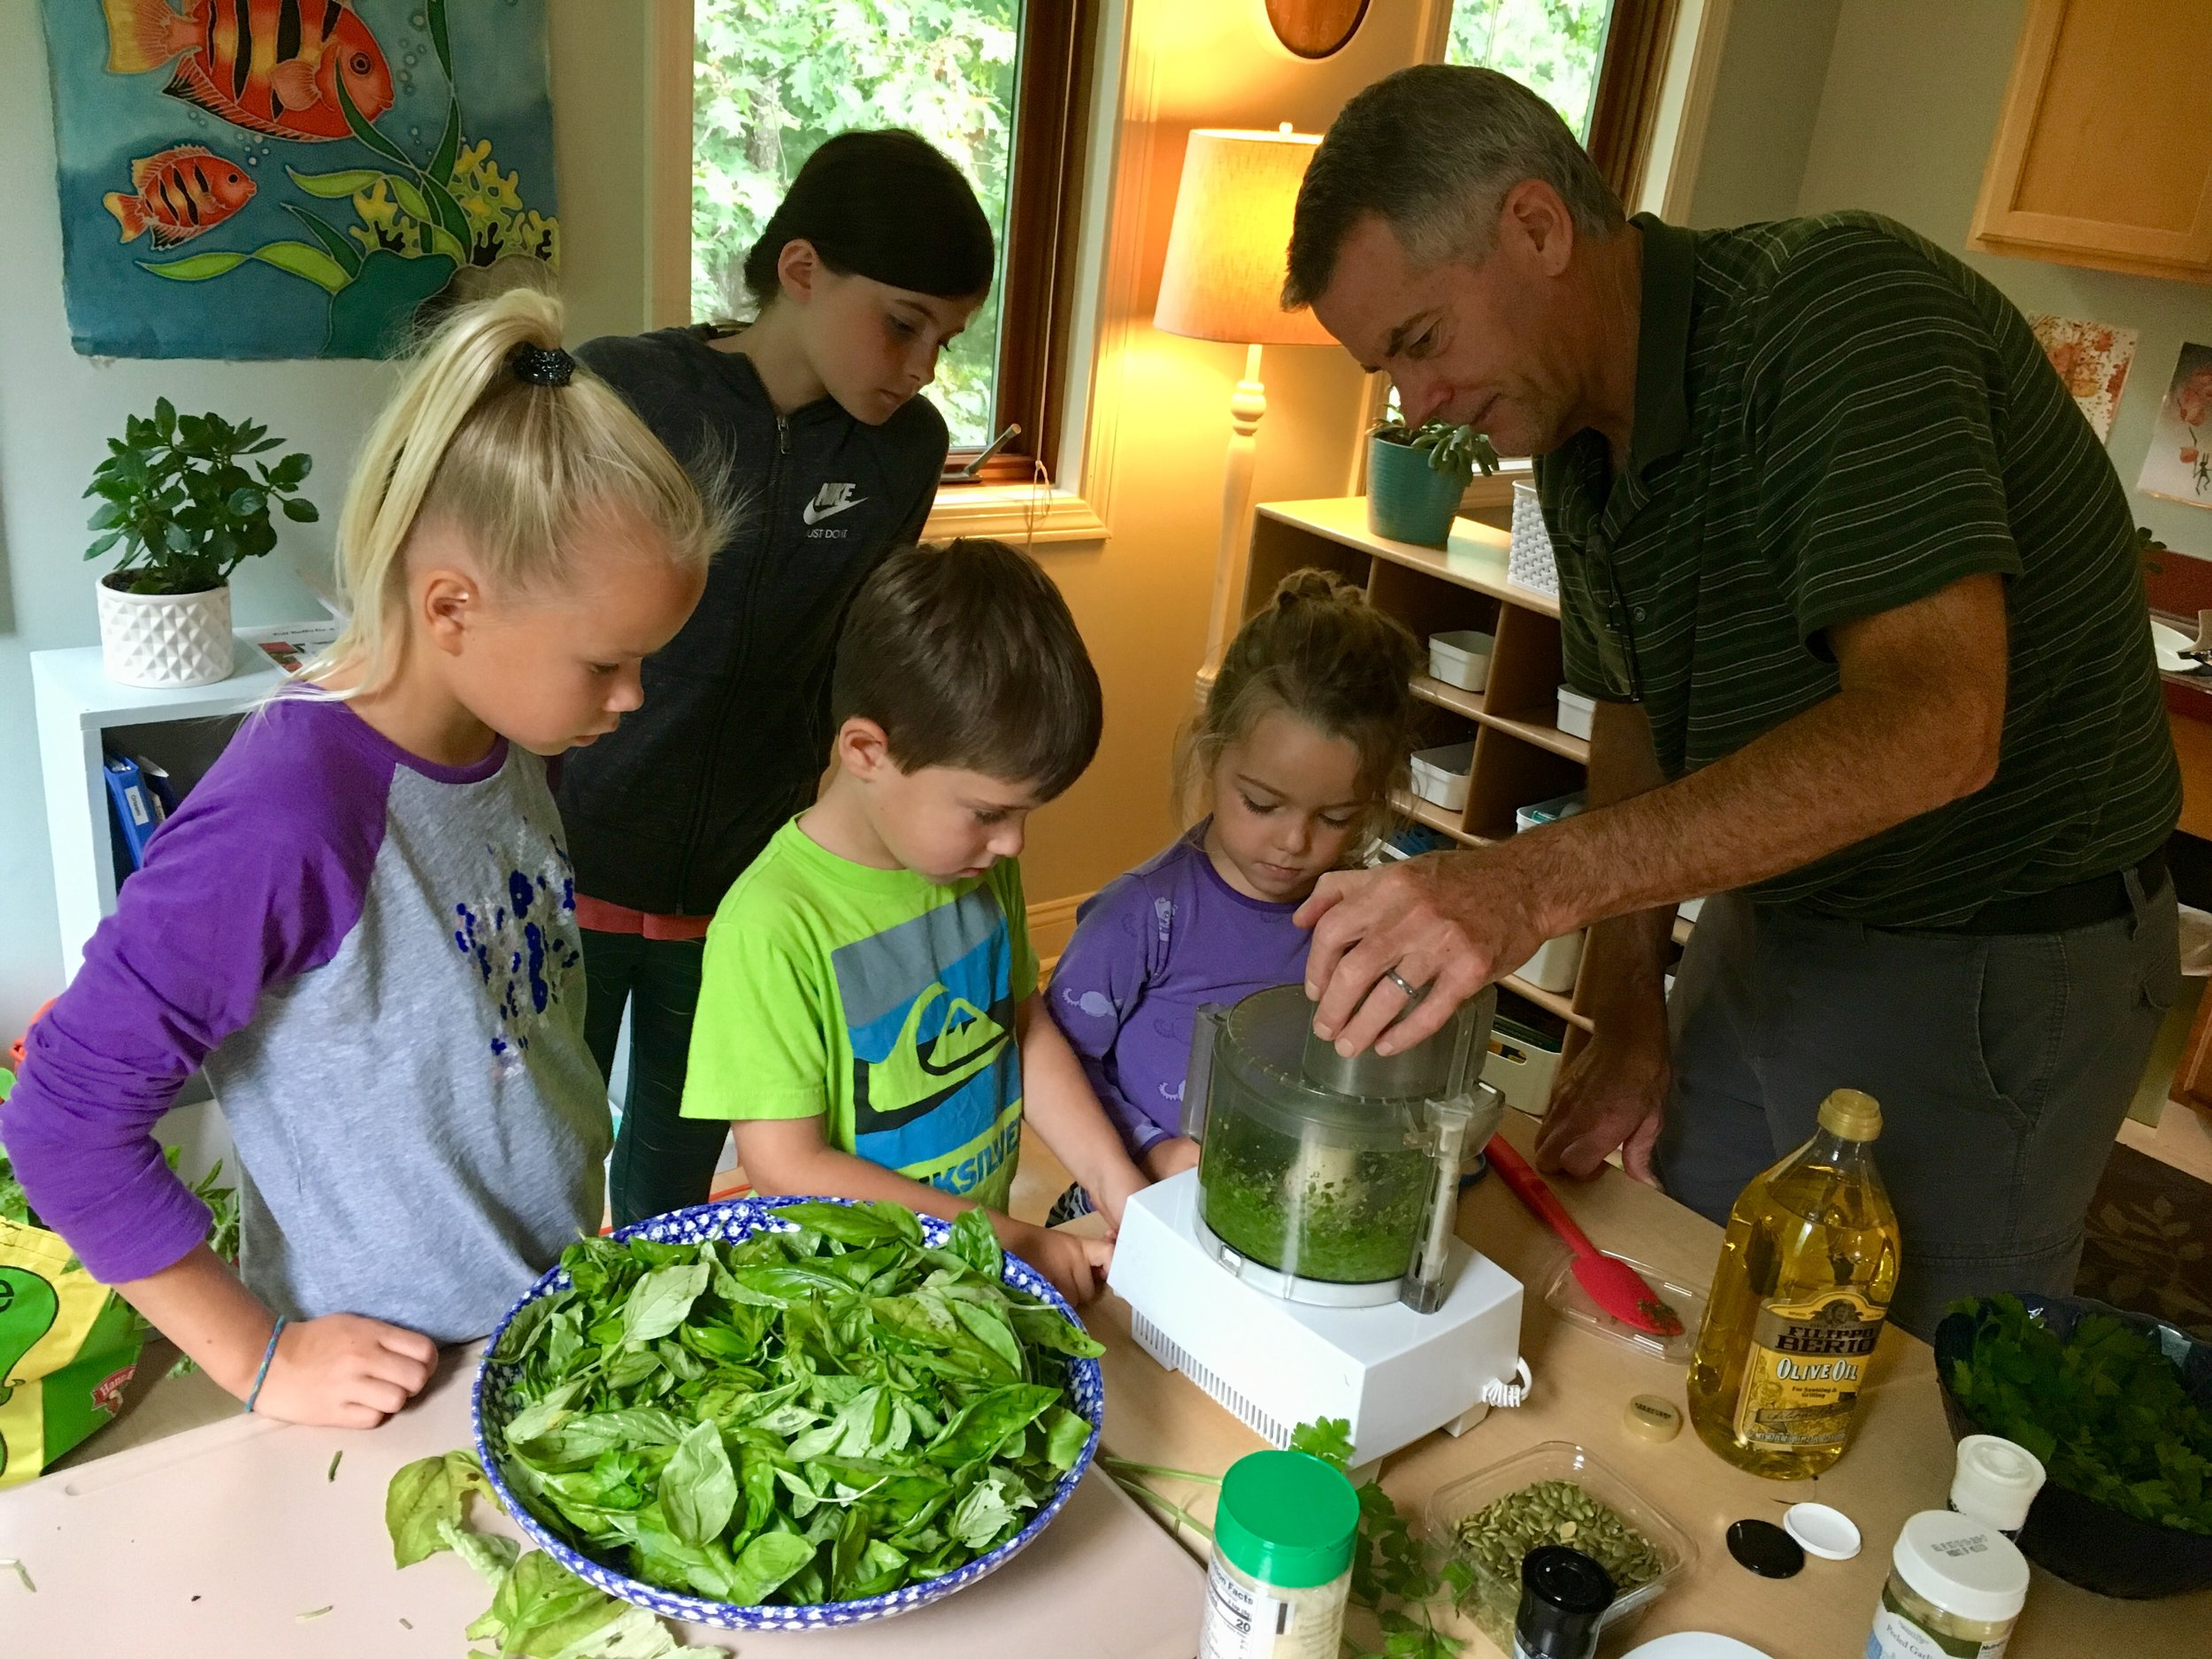 Upper elementary students work with primary students along with Michael to make pesto with basil harvested from our garden.  Pumpkin seeds replaced the nuts to make it nut free.  The smell of basil filled the air!